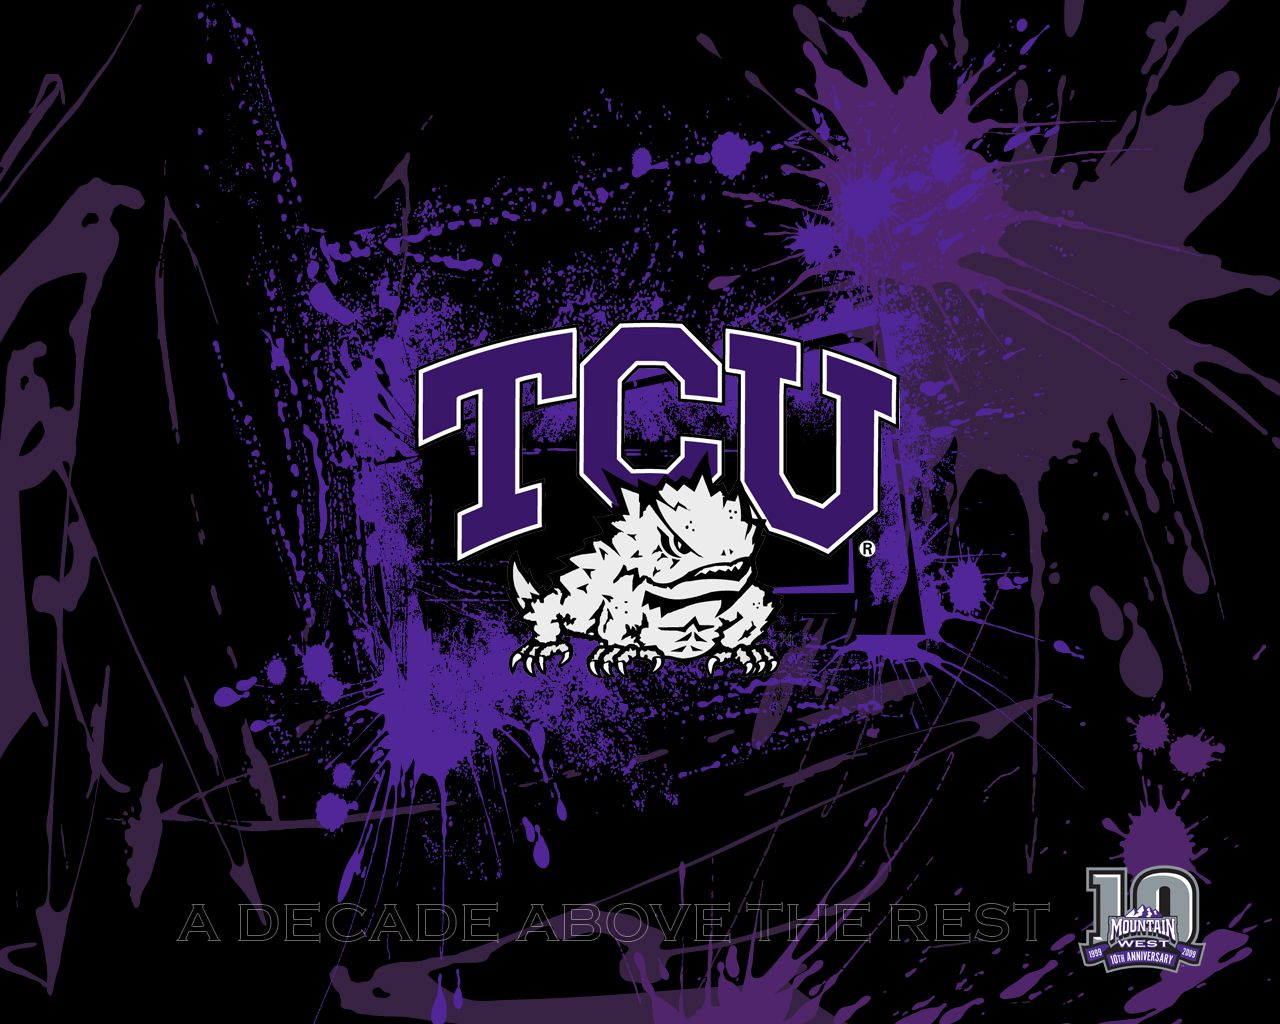 tcu Google Search colleges! Football, Sports, Purple